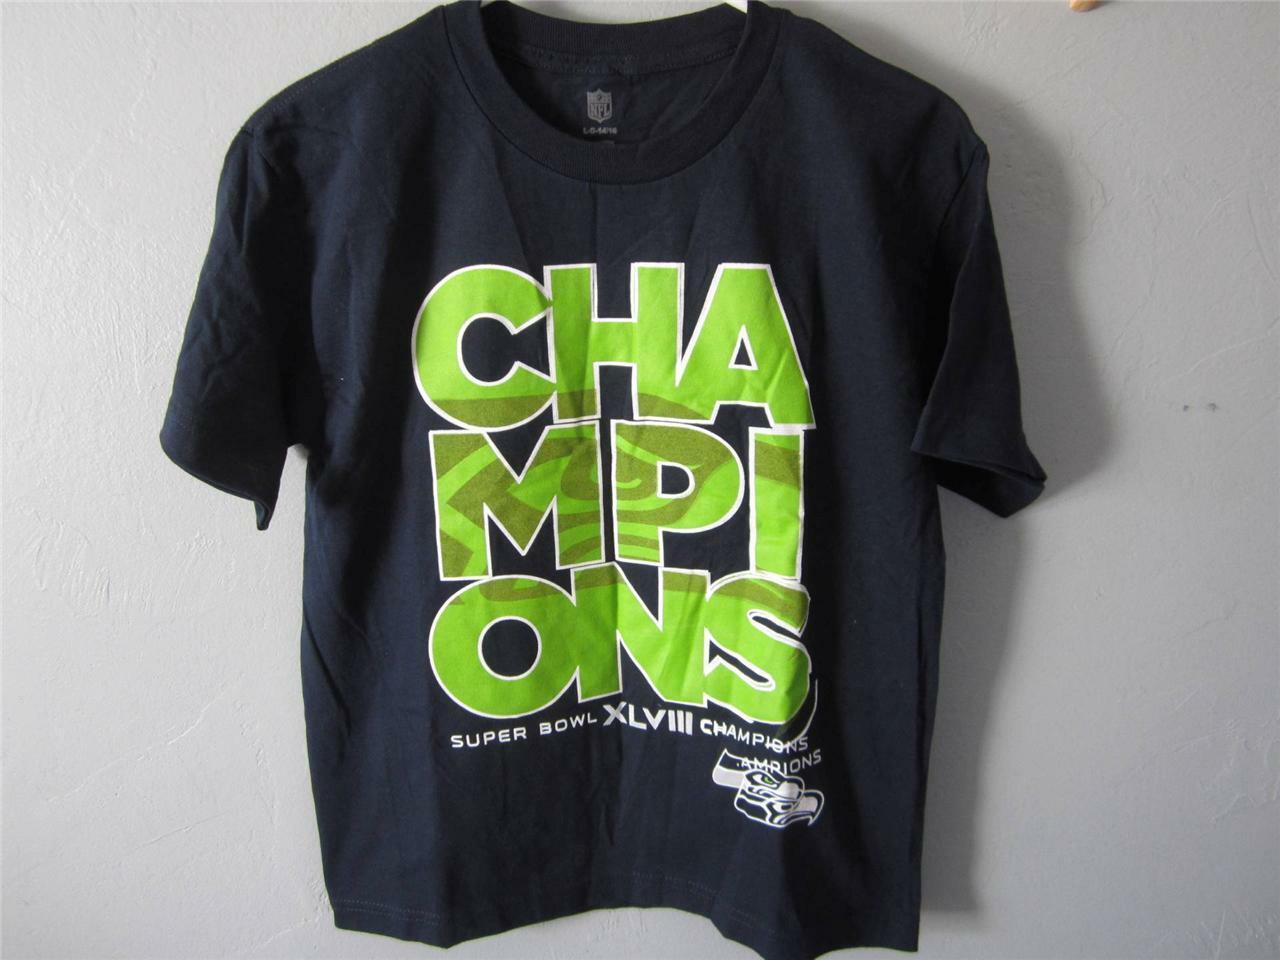 New-Flawed Seattle Seahawks L Super Bol Xlviii Champs Jeune GRAND L Seahawks Chemise 42VE d3ab79